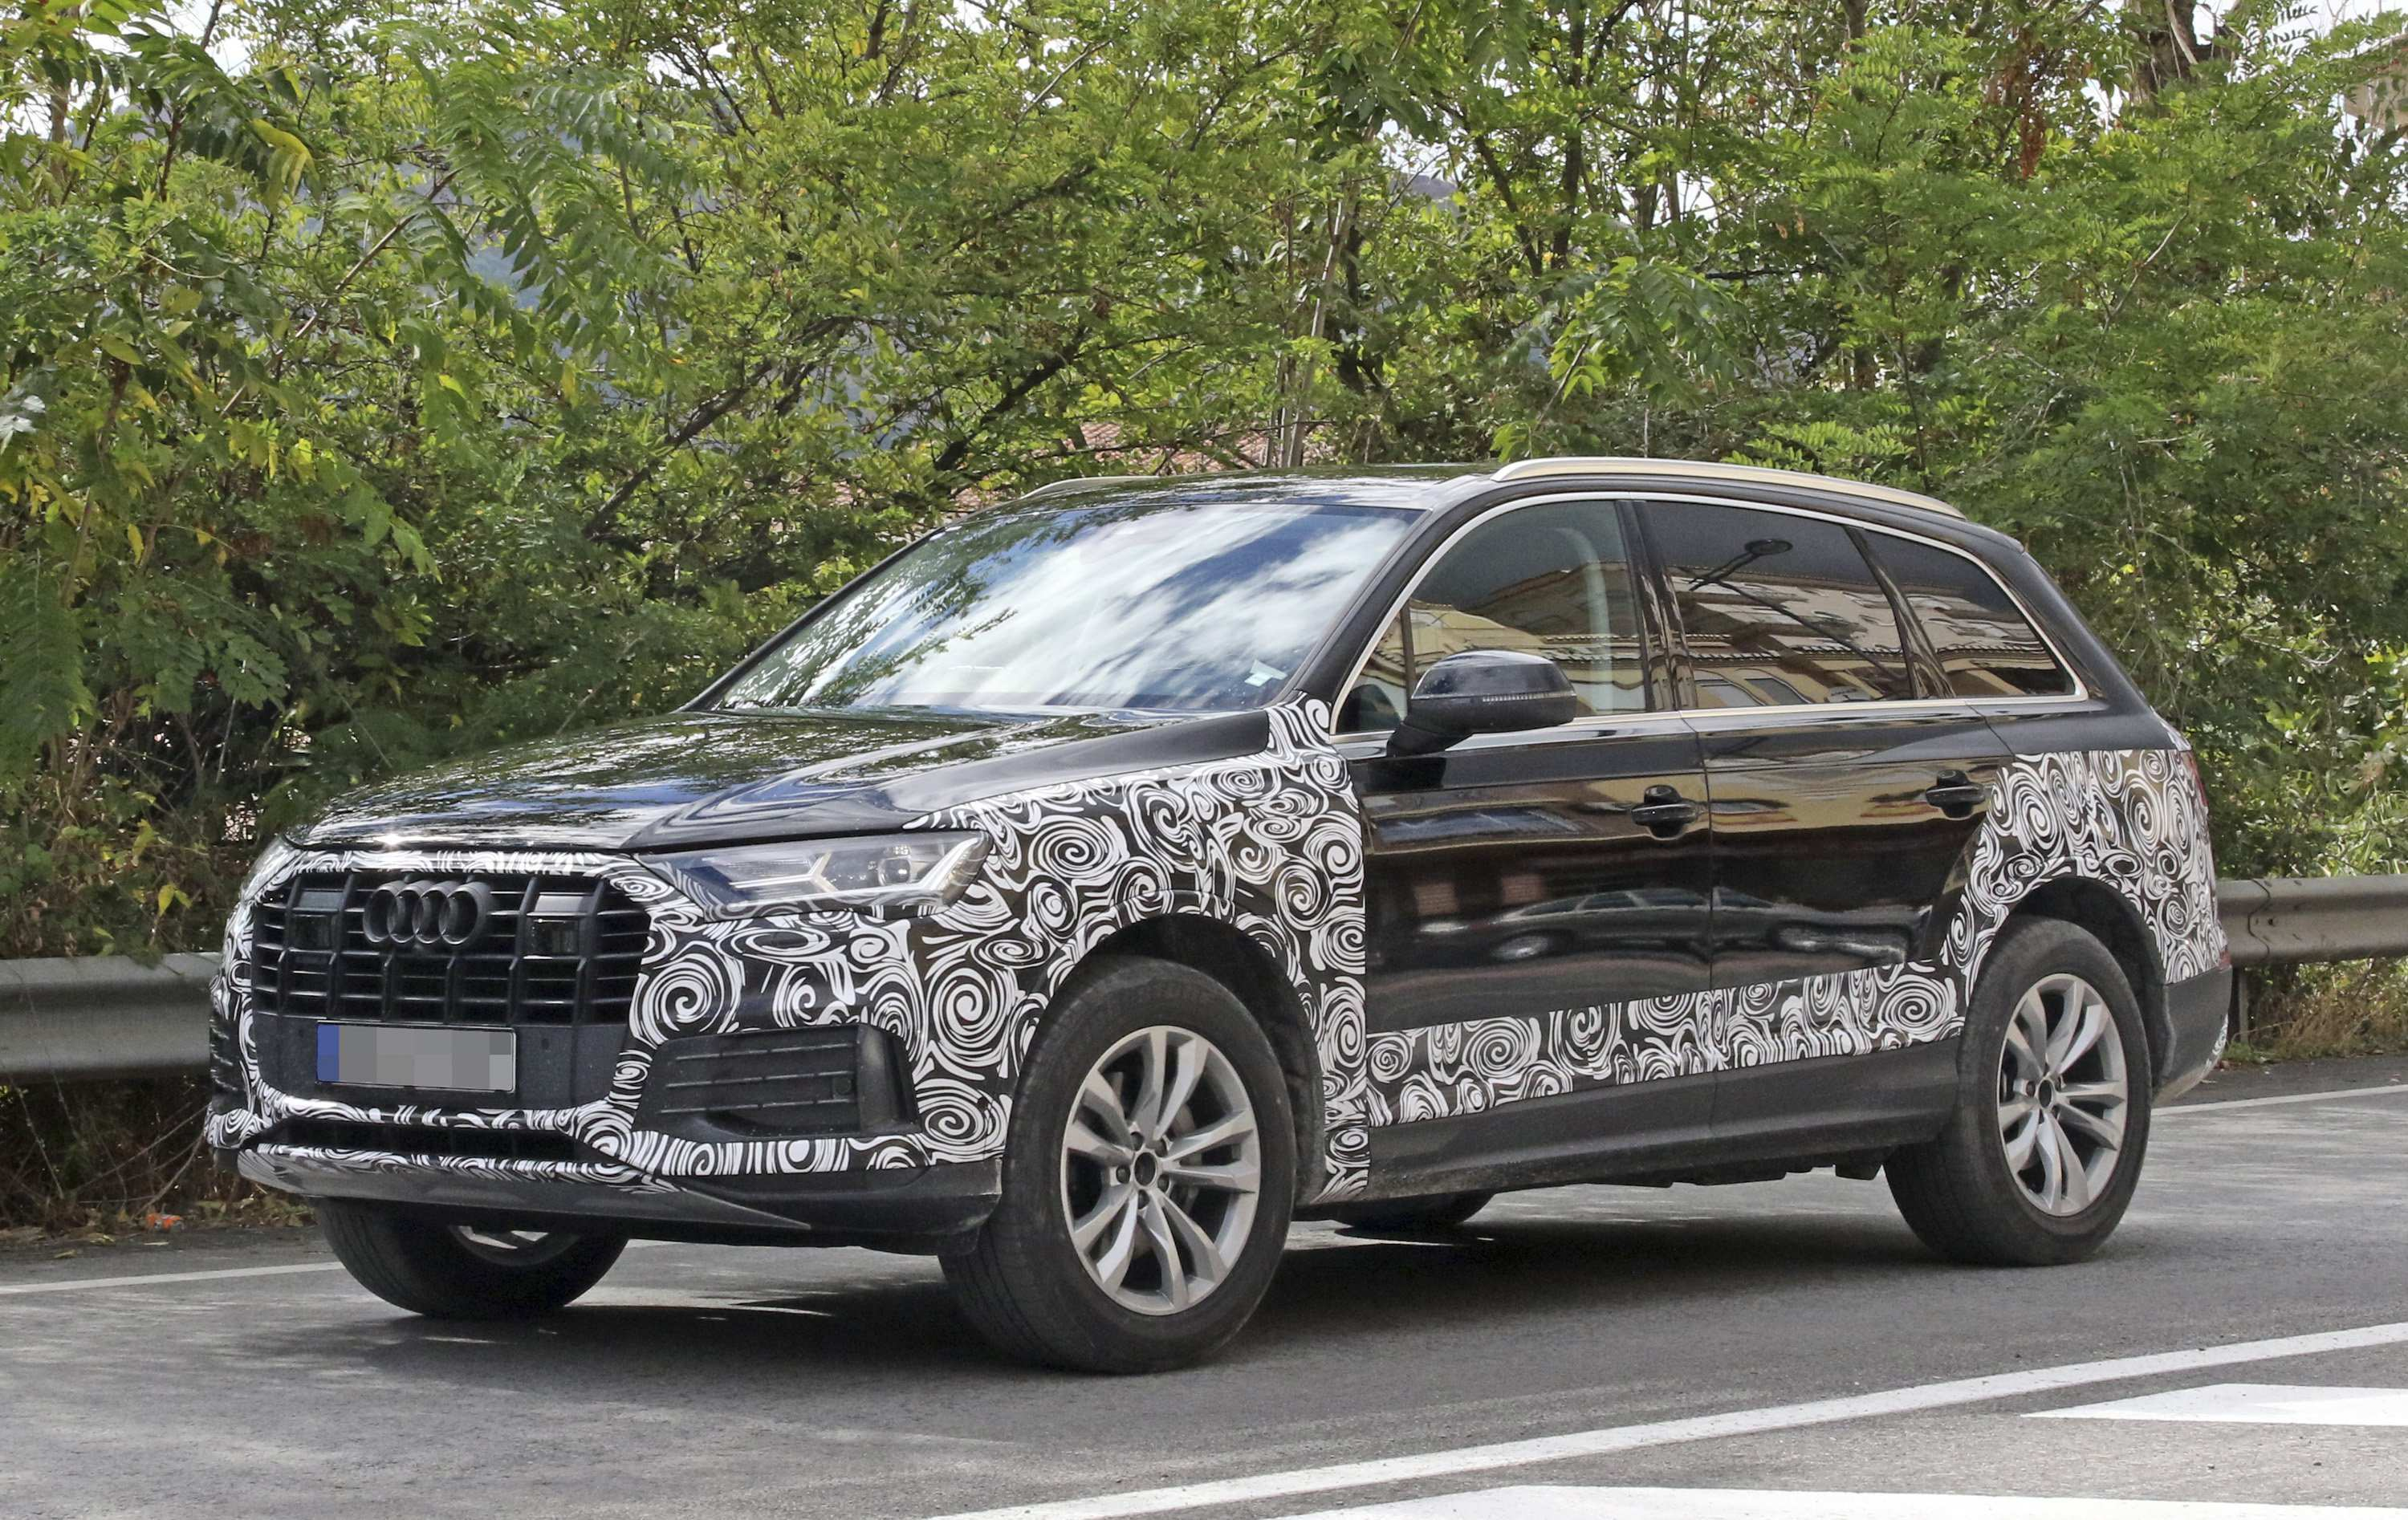 85 The 2020 Audi Q7 Changes Pricing